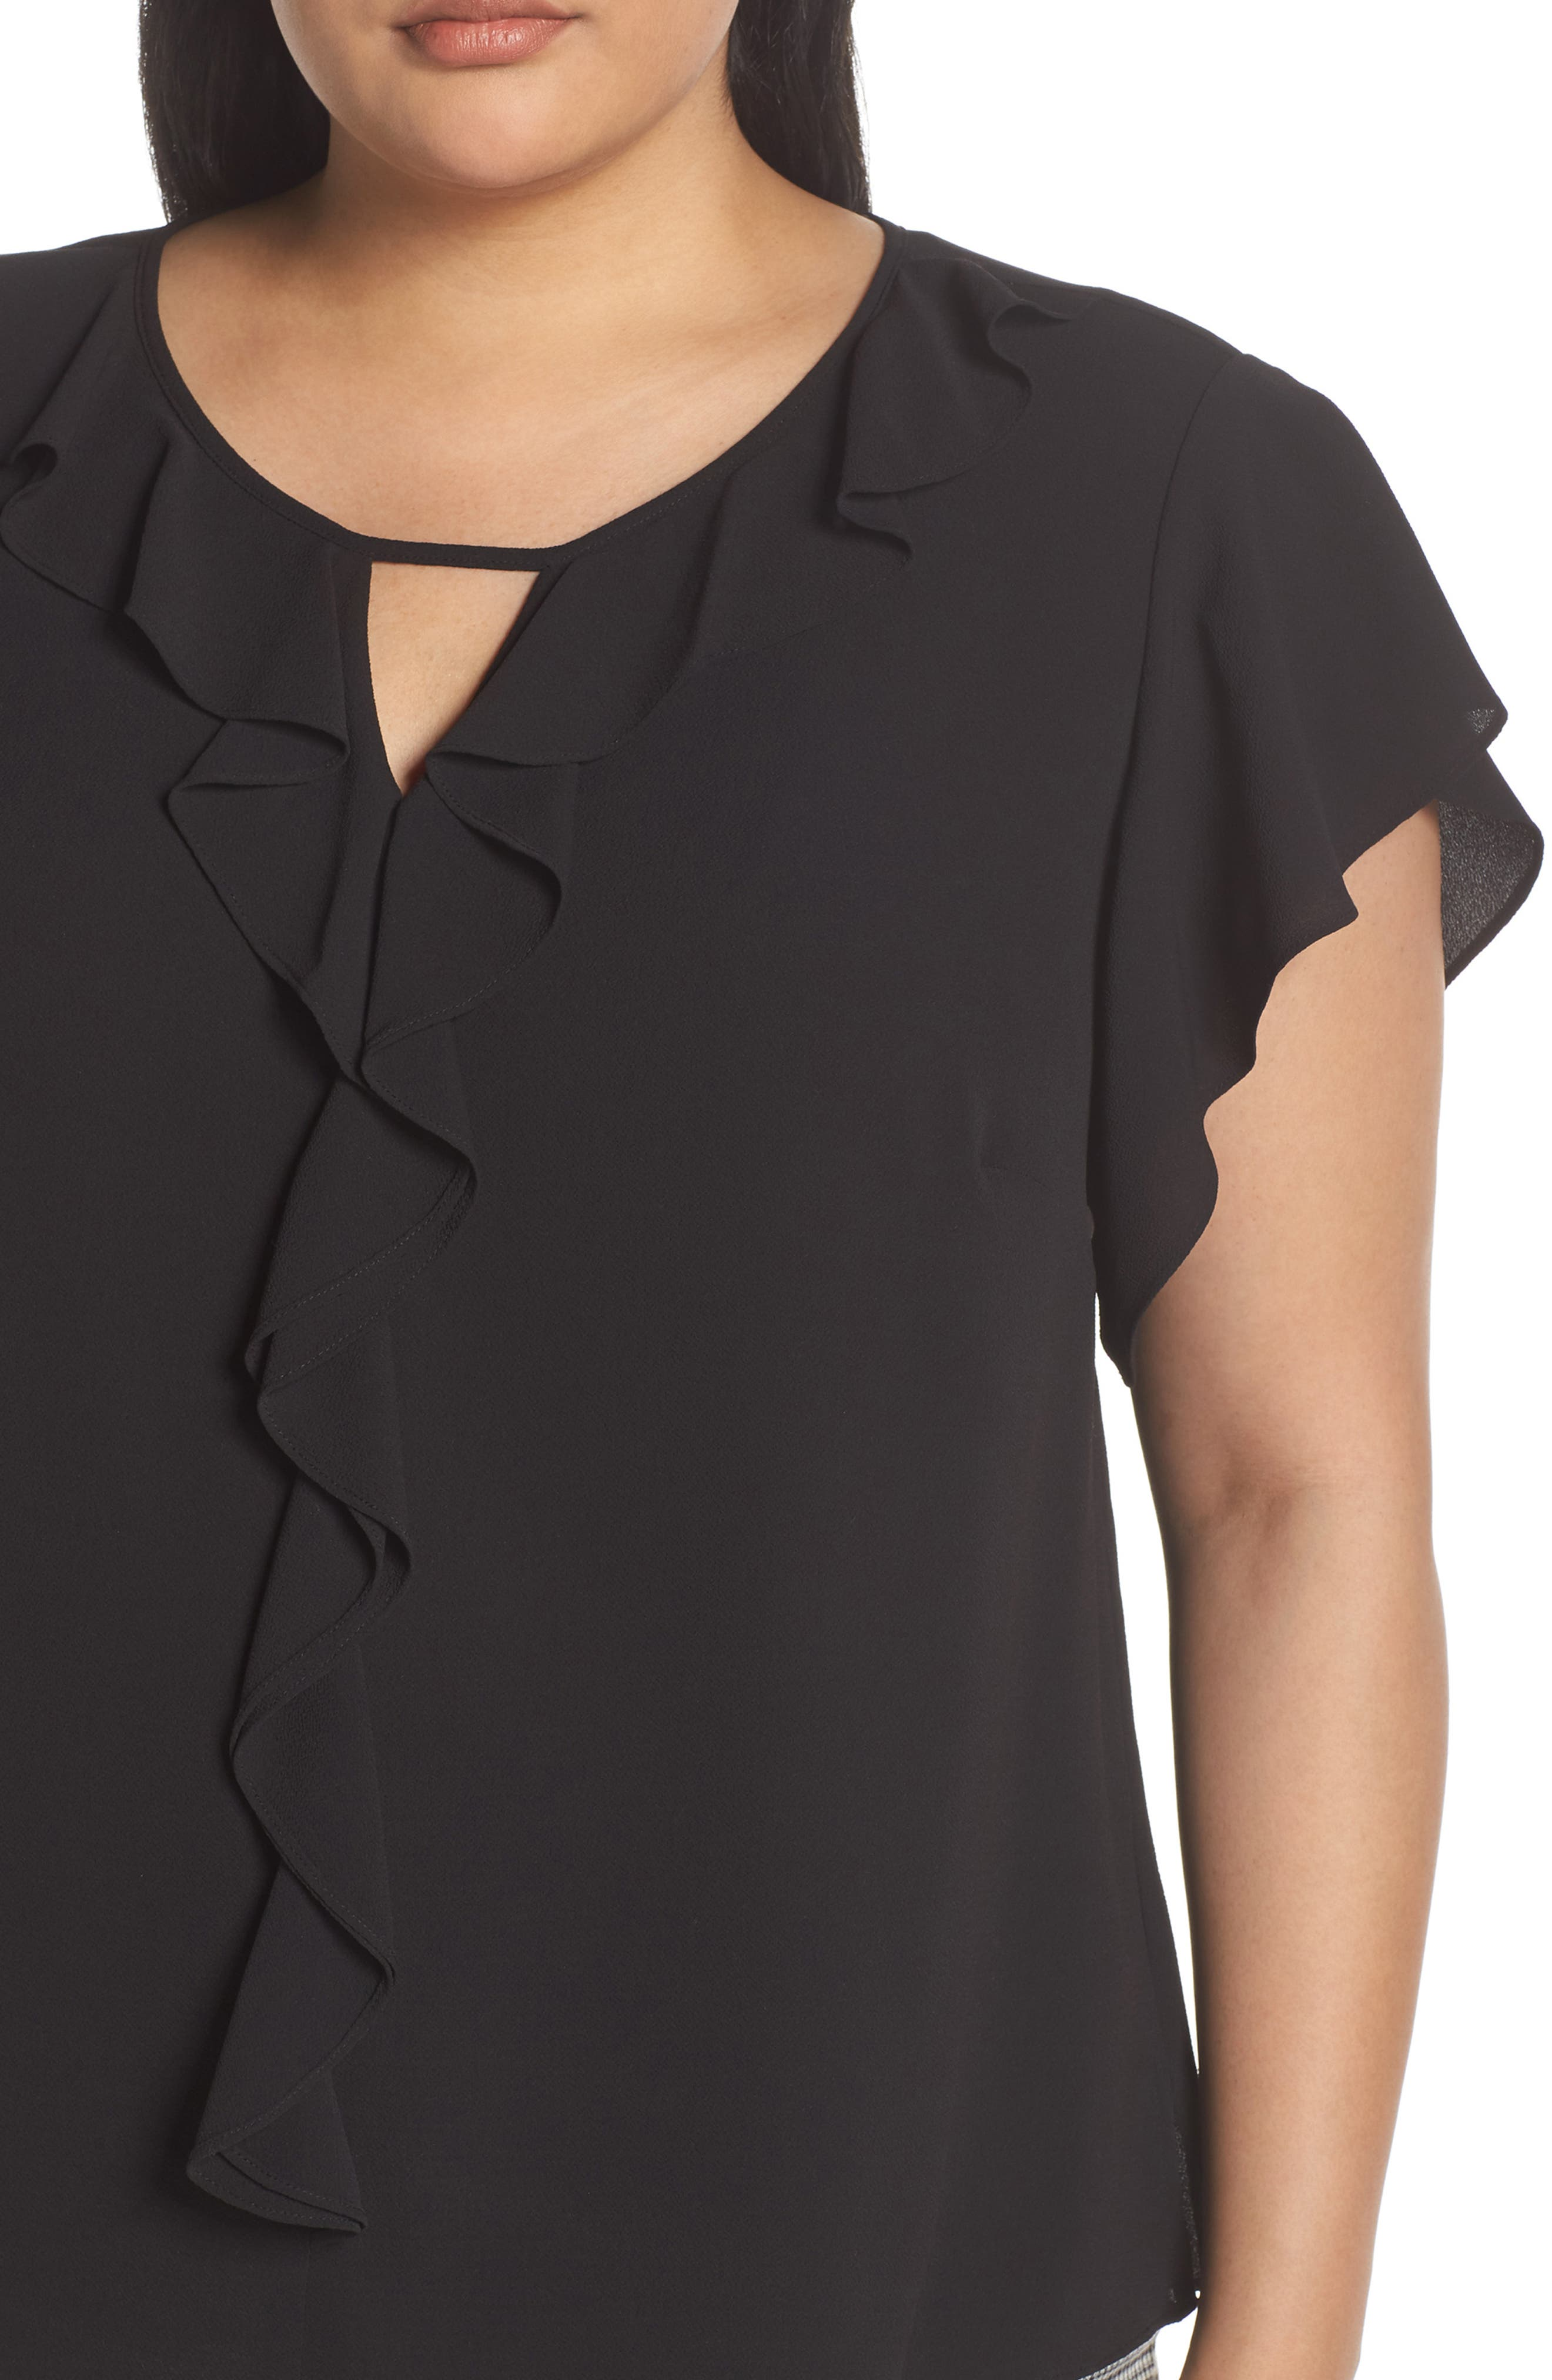 VINCE CAMUTO, Ruffle Flutter Sleeve Top, Alternate thumbnail 4, color, RICH BLACK